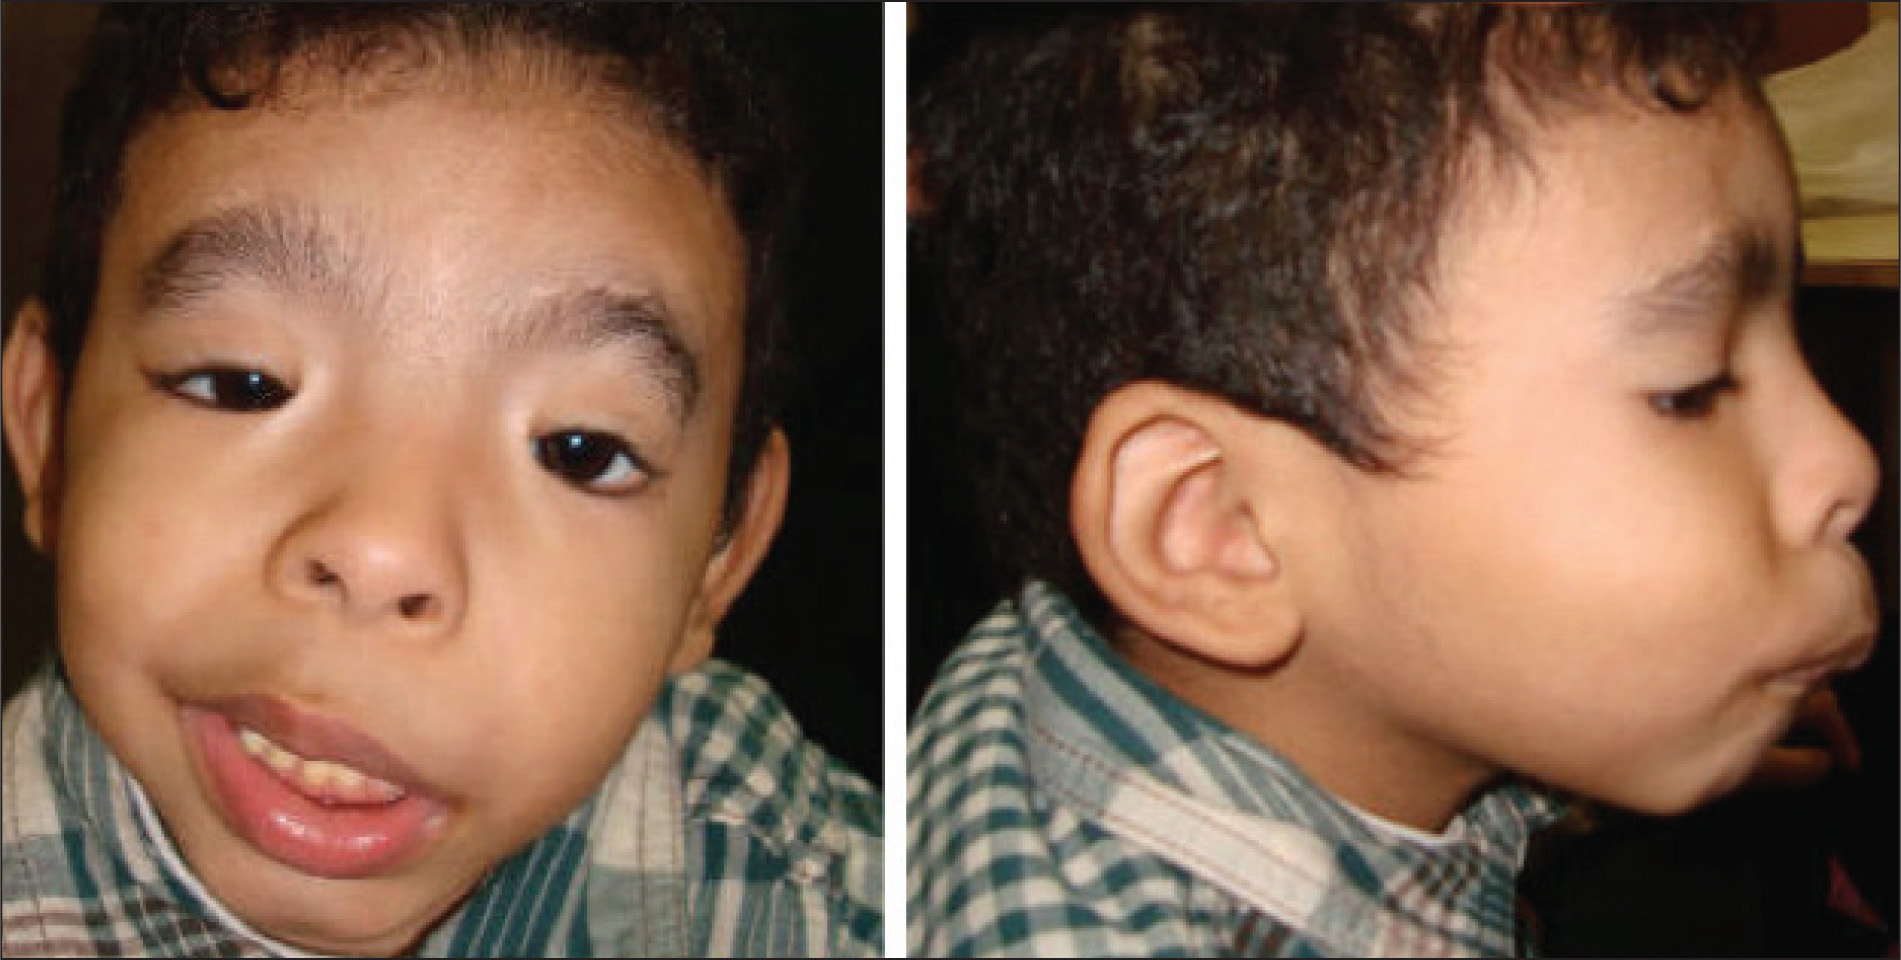 In primary position, blepharophimosis, telecanthus, ptosis, and epicanthus inversus can be appreciated. In side profile, the child's micrognathia can be appreciated. He attempted to look to his right in the side profile image, but he was unable.